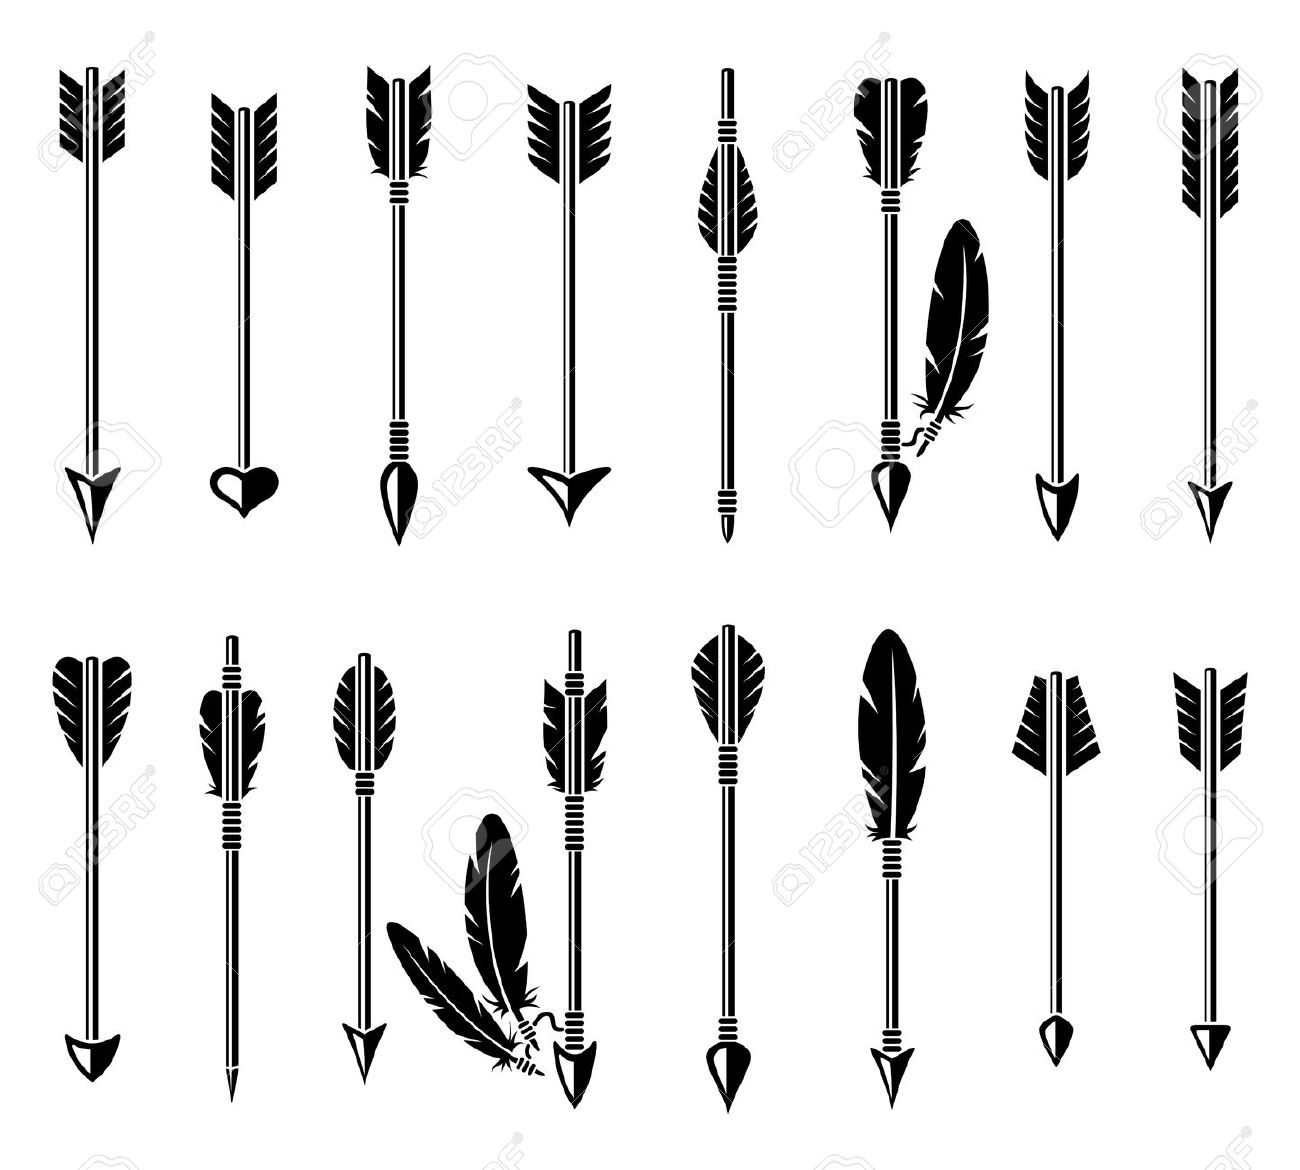 Clipart Of Archery Bow And Arrow Outline 20 Free Cliparts